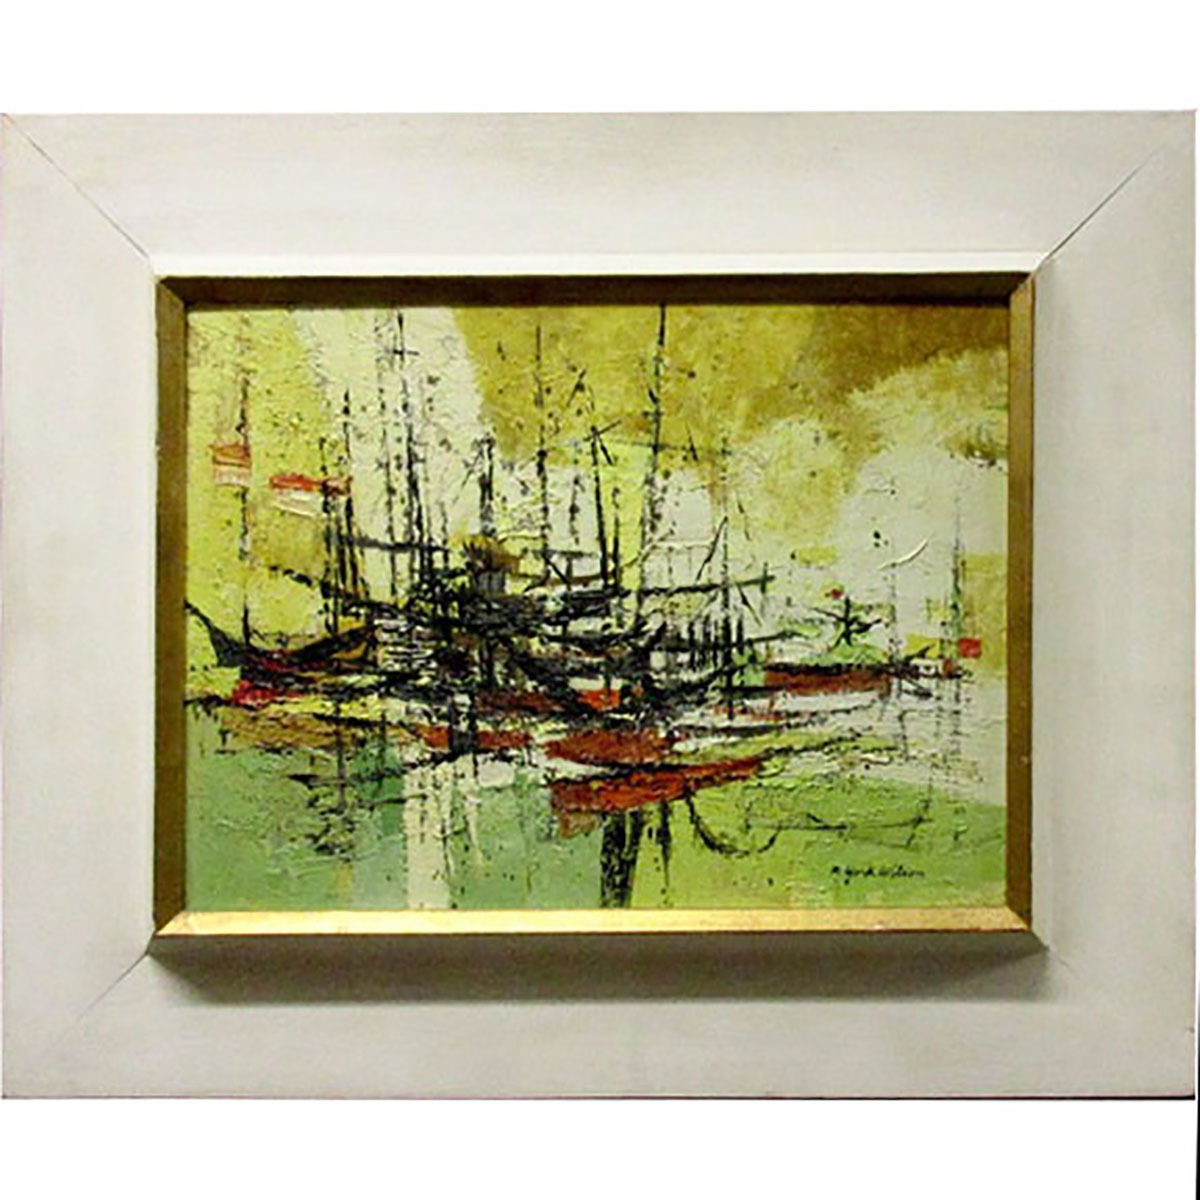 Off the Wall Art Online Auction - May 19, 2016 - Lot 54 - Waddingtons.ca